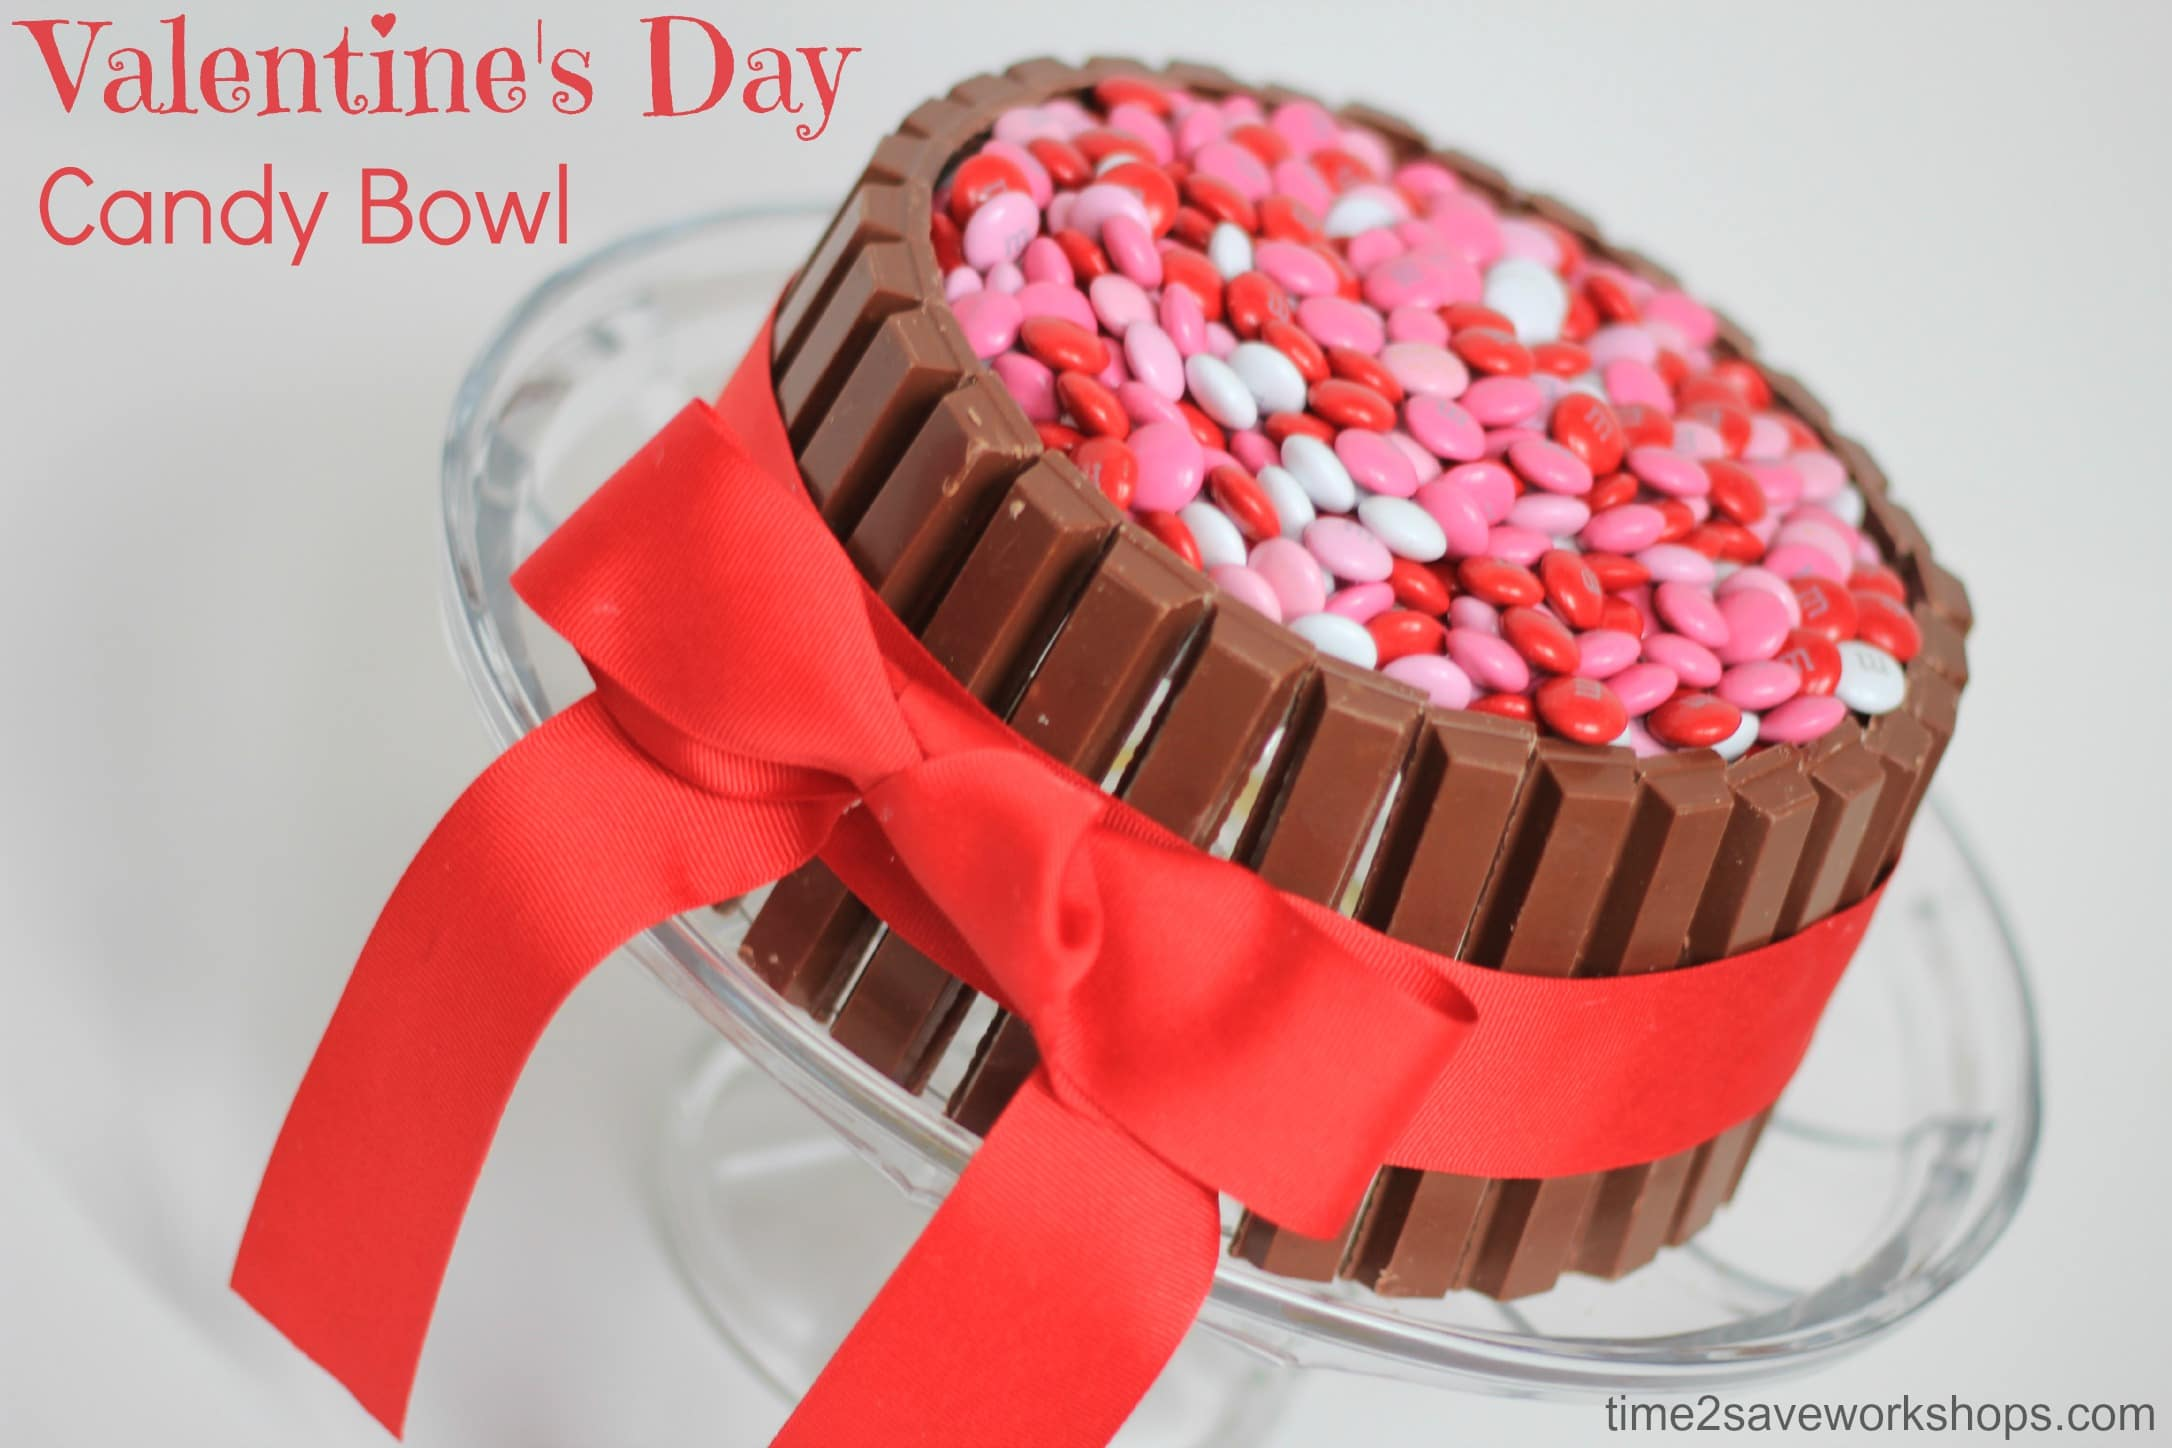 Valentine's Day Candy Bowl